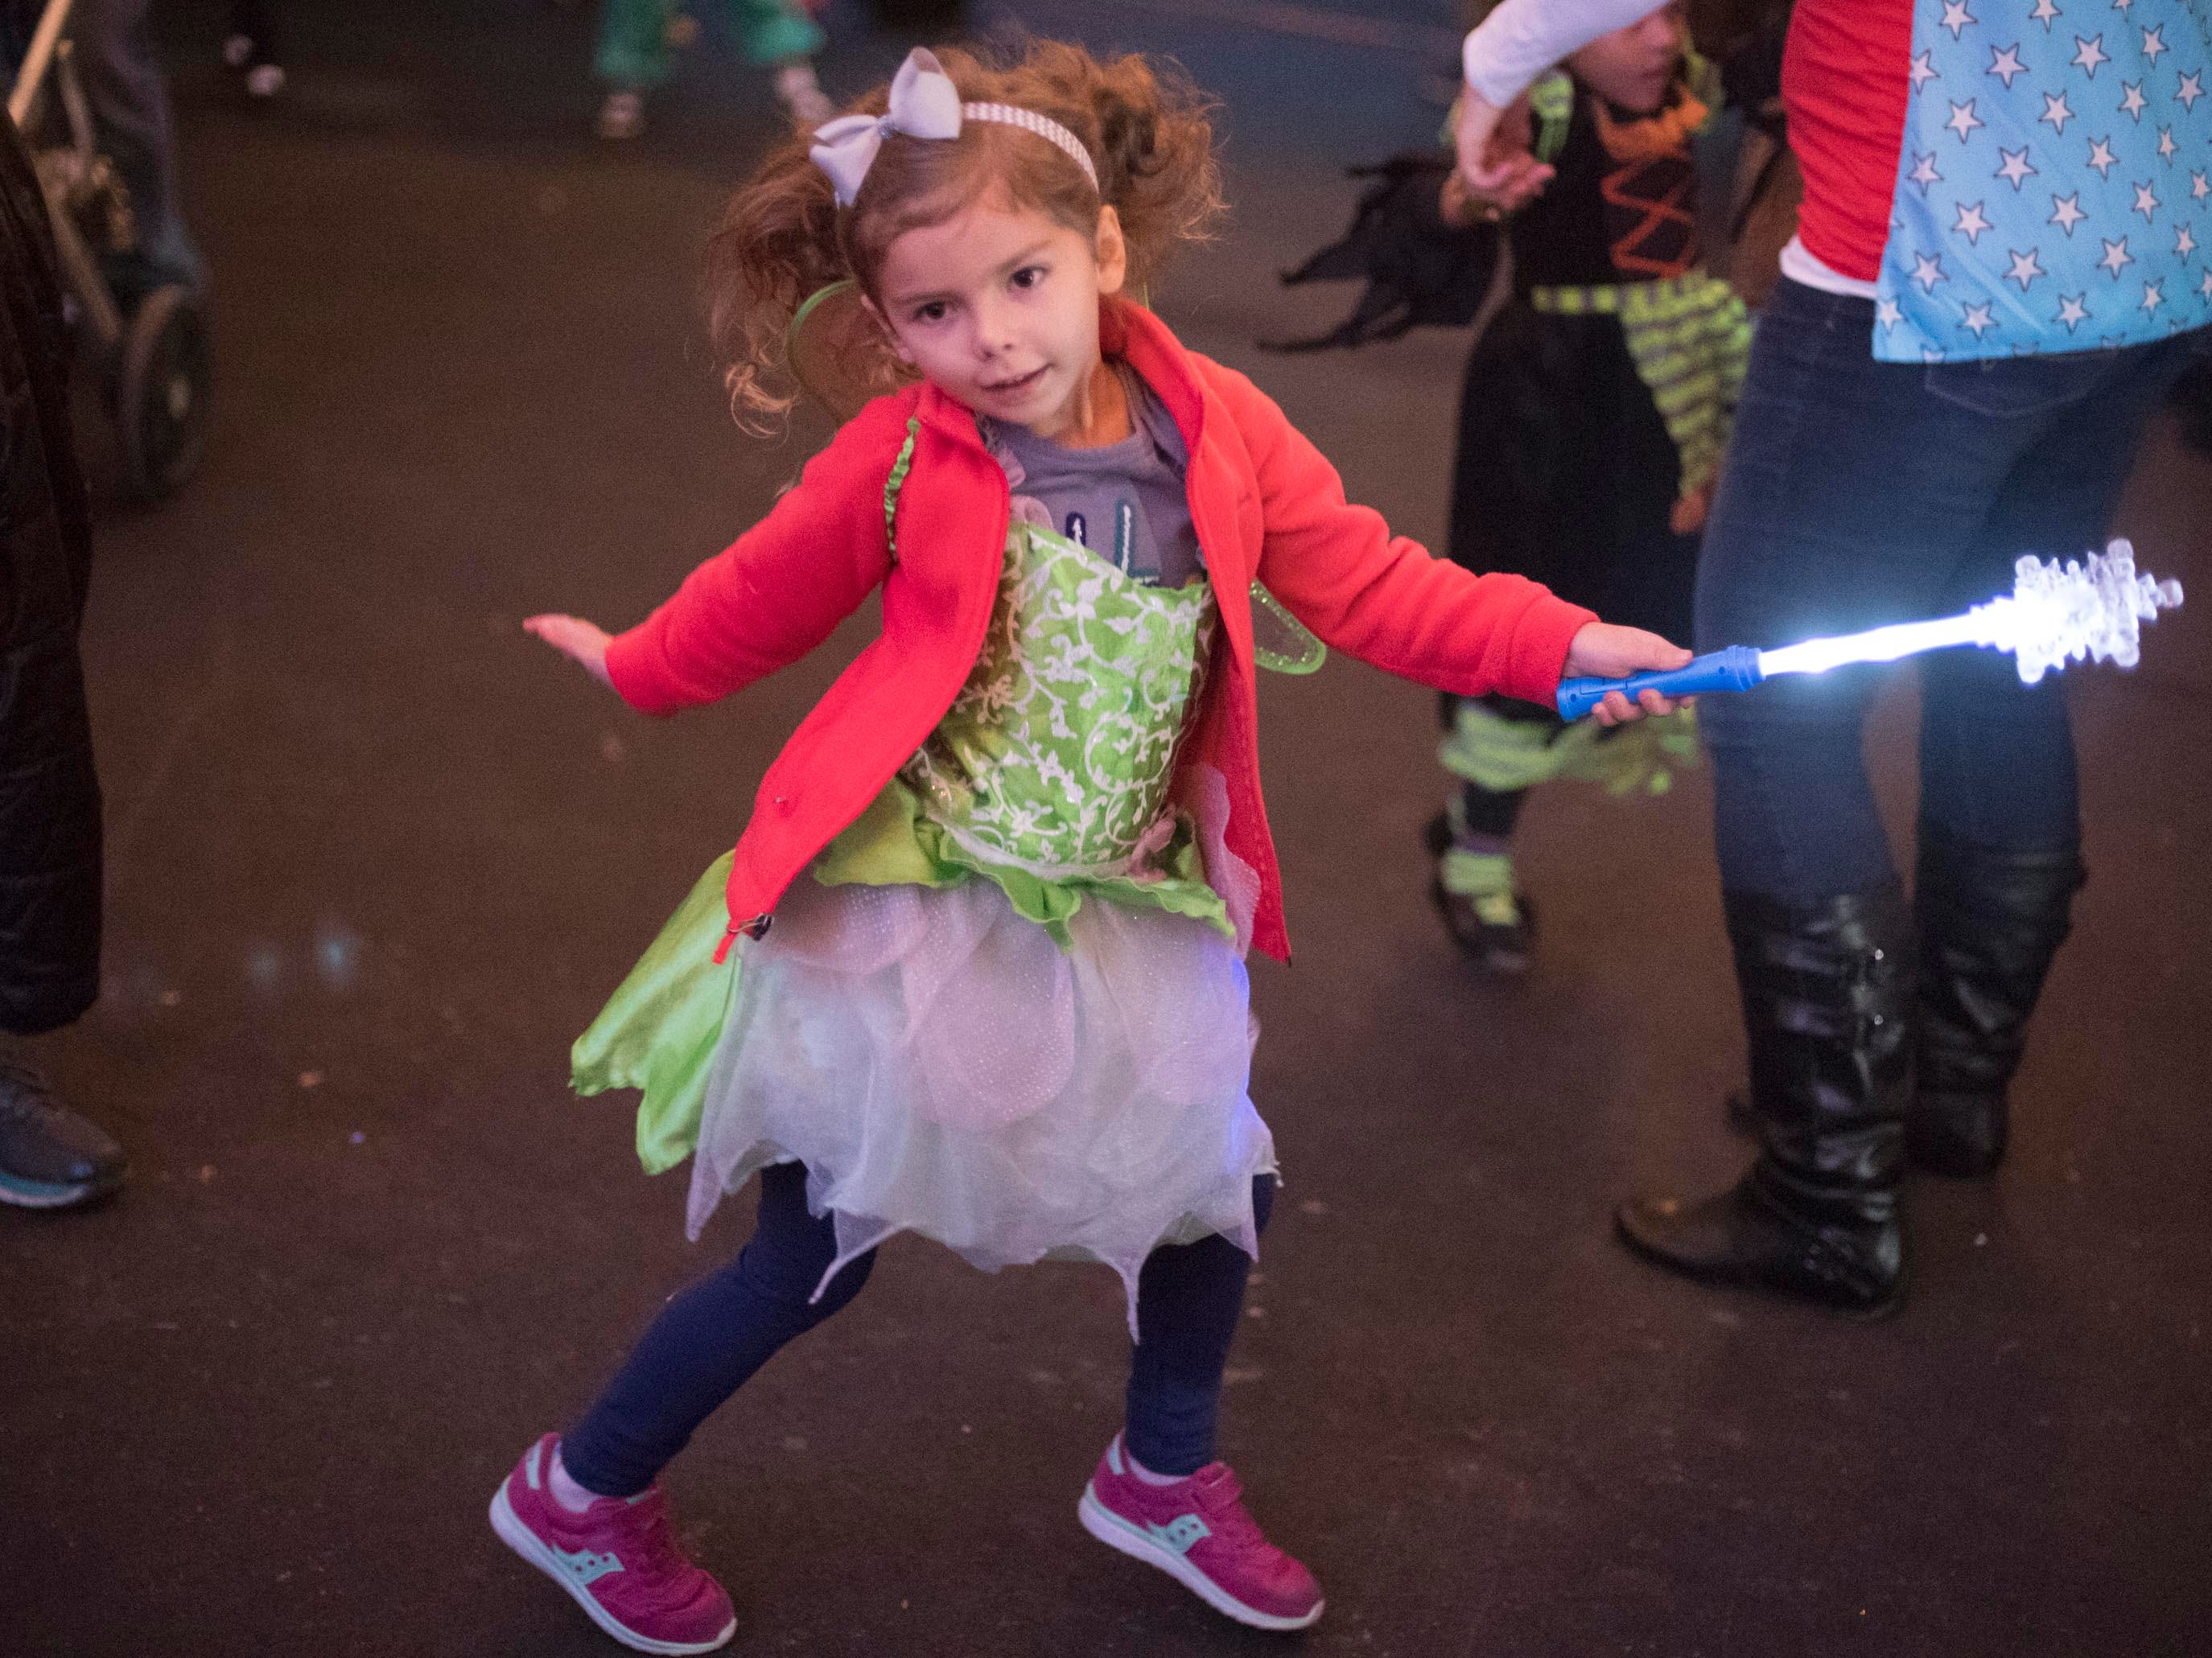 A young trick or treaters dances at the Monster Mash dance party during Zoo Knoxville's Boo! at the Zoo on Saturday, October 20, 2018.